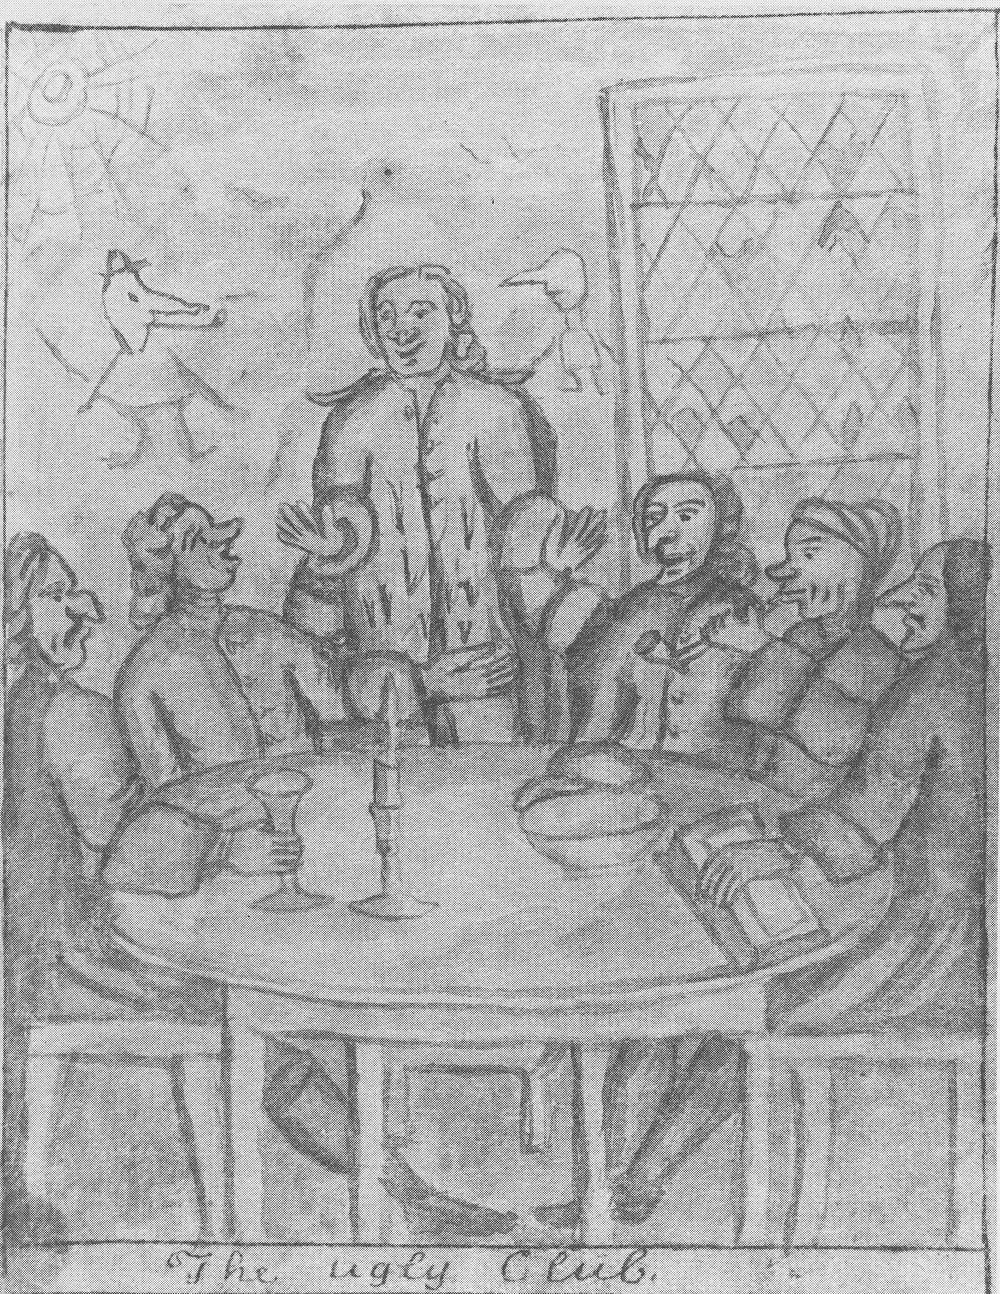 A pencil drawing of 5 men sitting around a table with a candle in the middle. One man is standing up, most have complex noses.